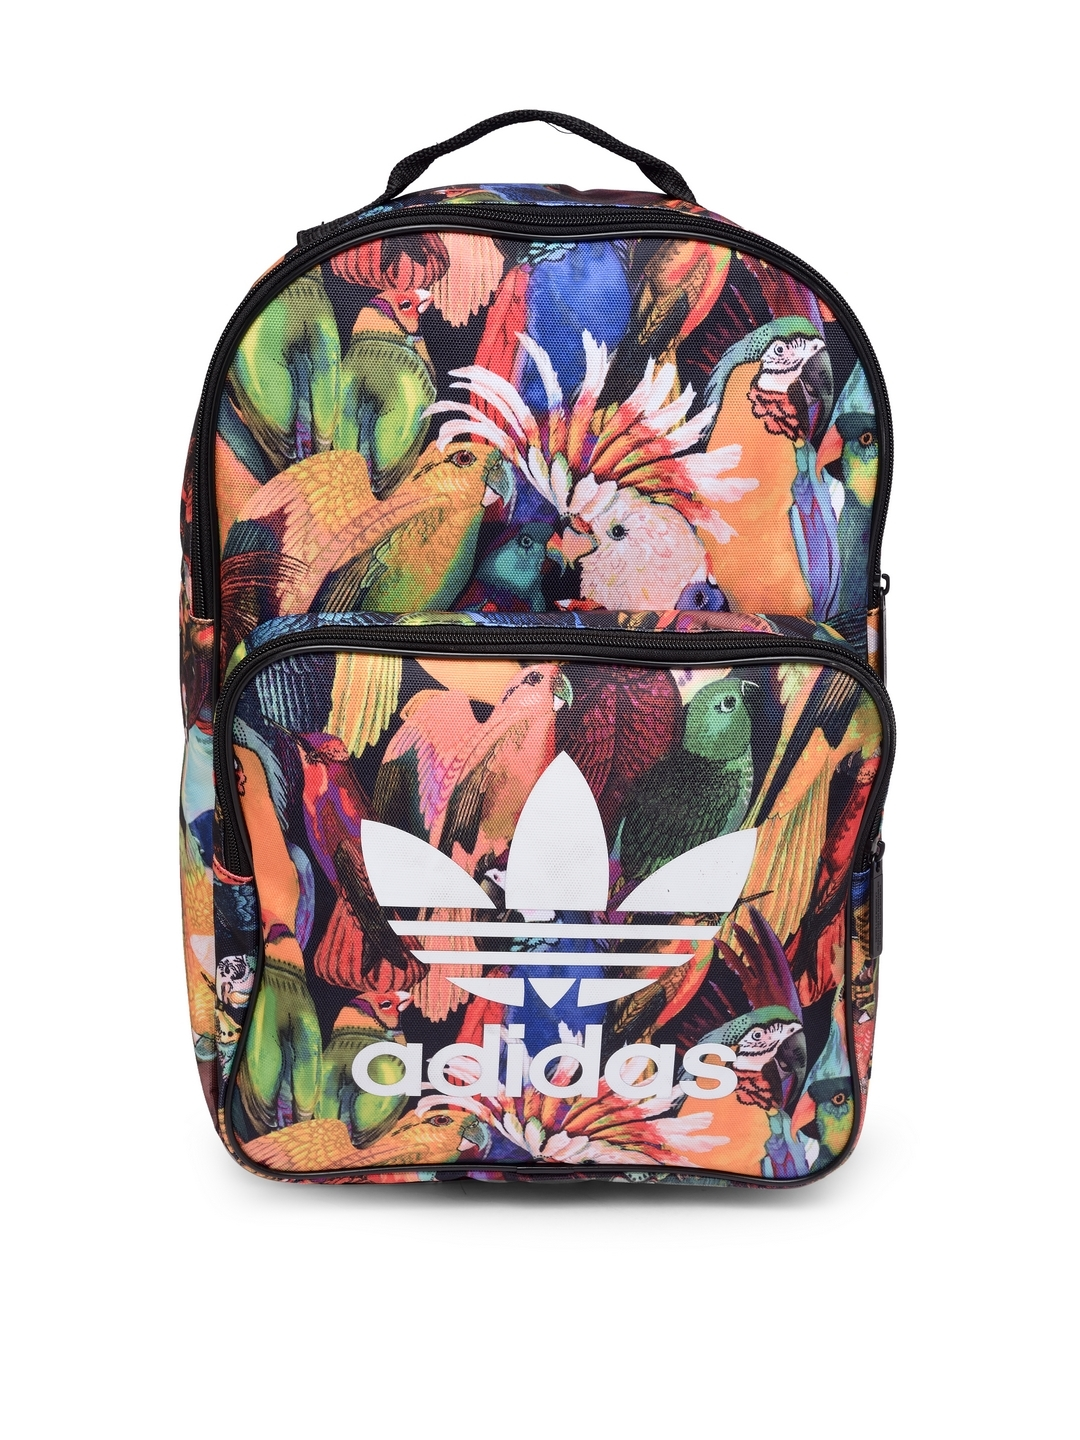 df493f1ce5 Buy ADIDAS Originals Women Multicoloured Graphic Backpack ...